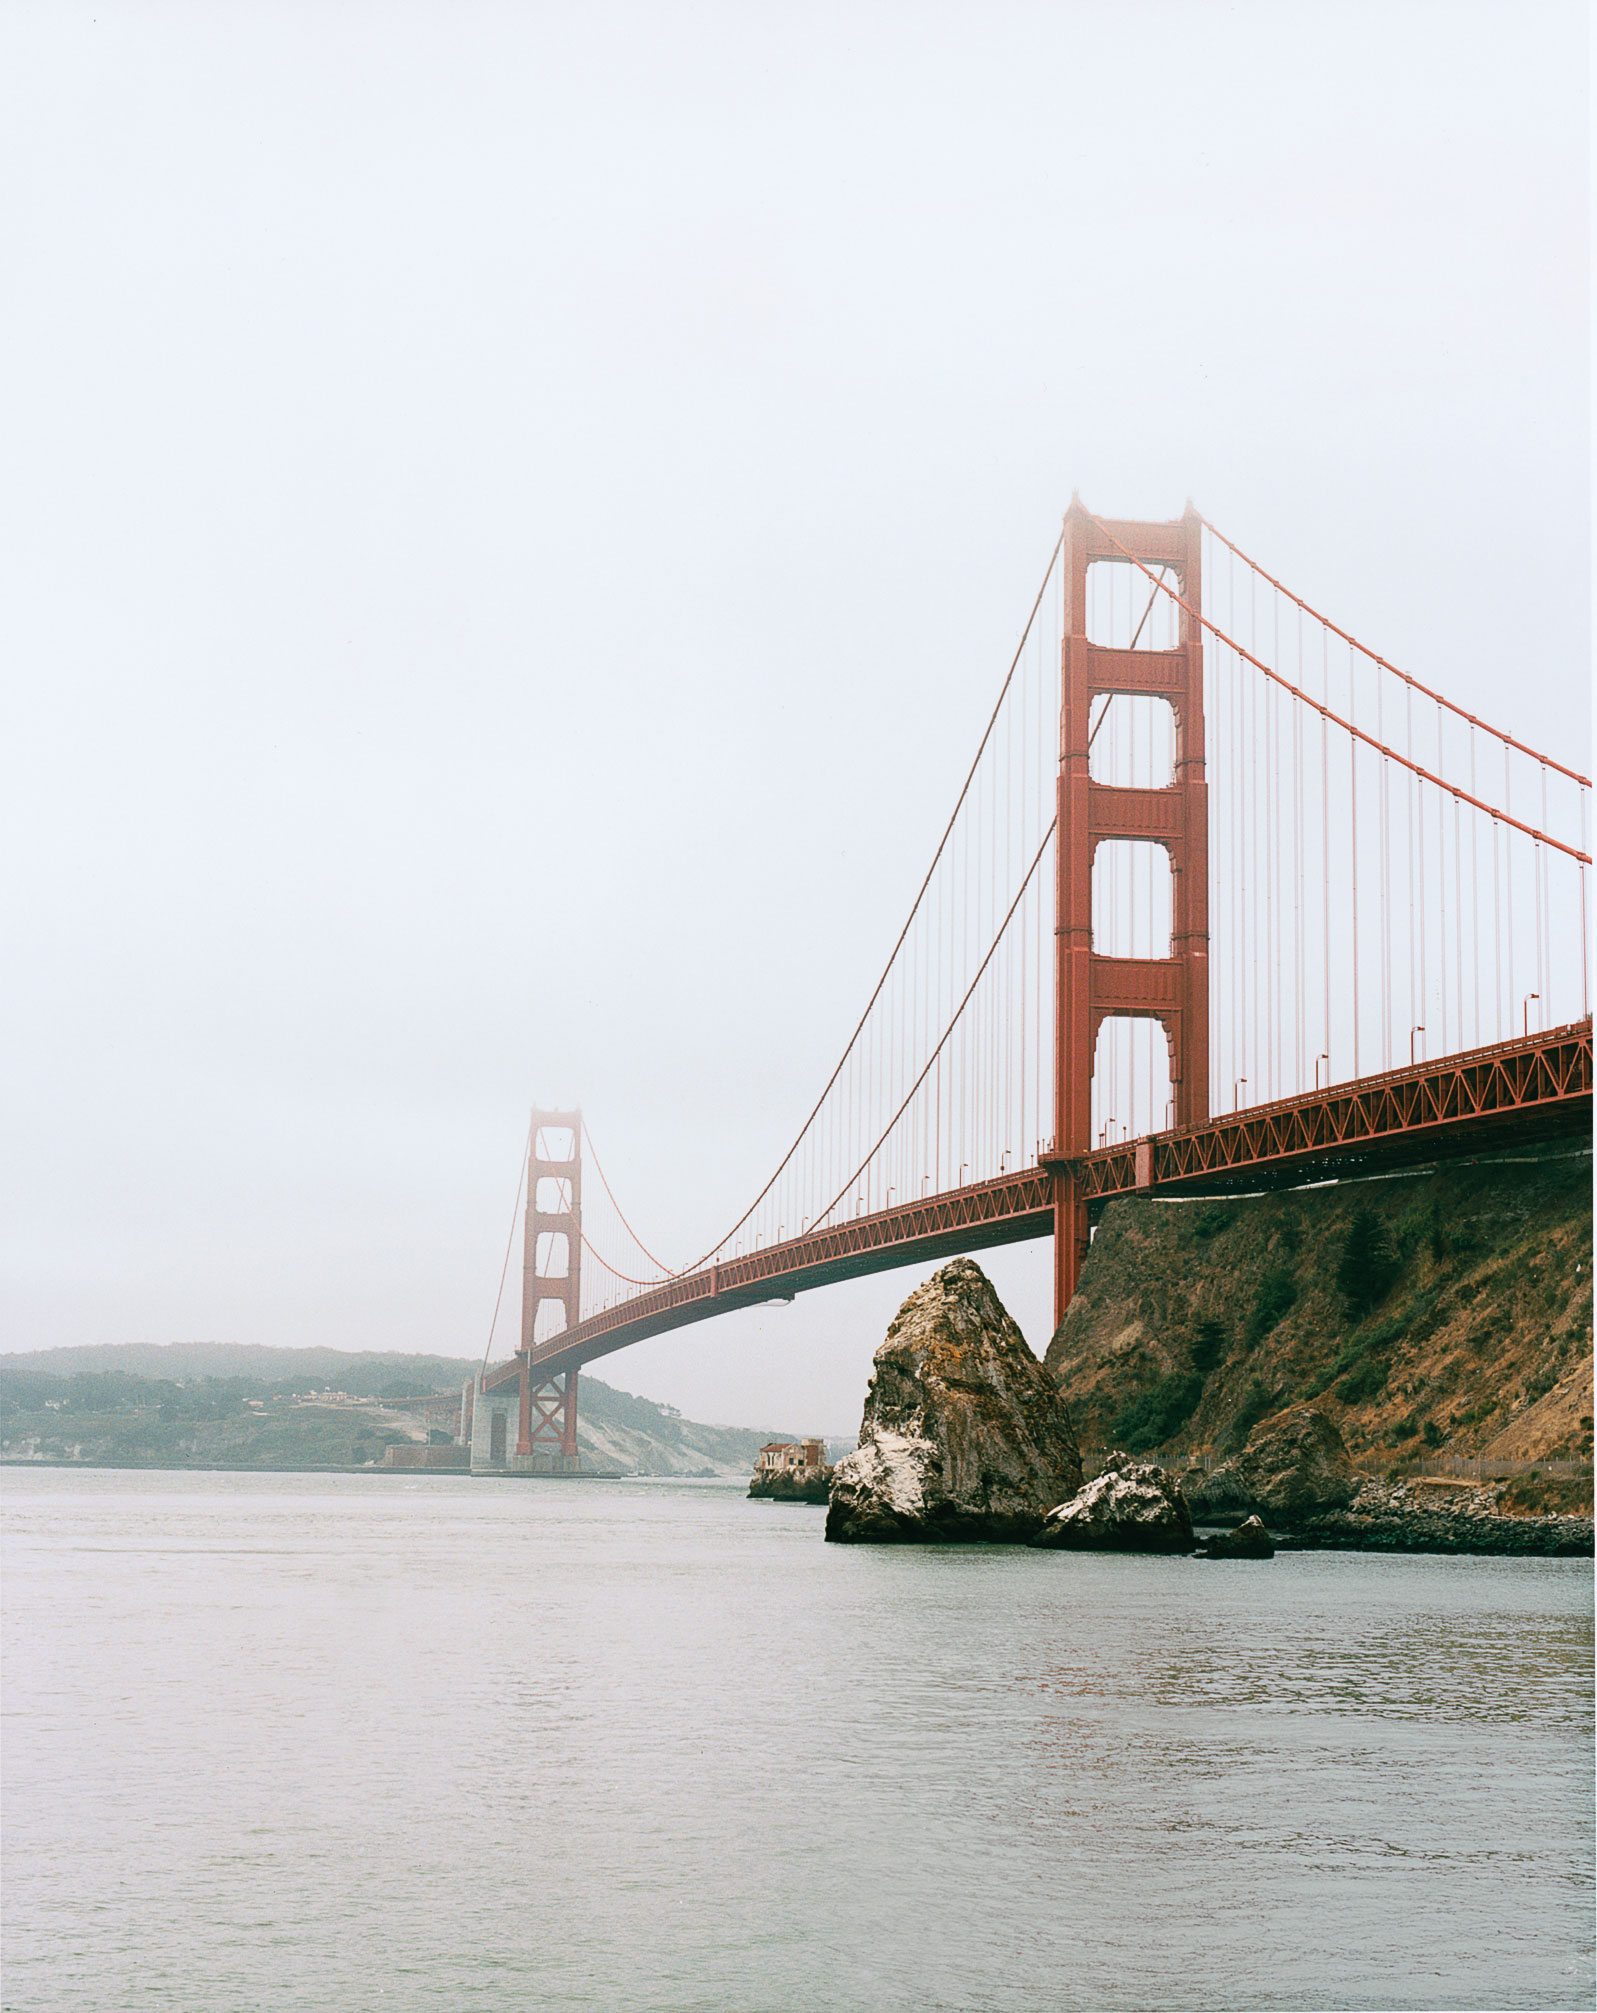 48 Hours in Sausalito